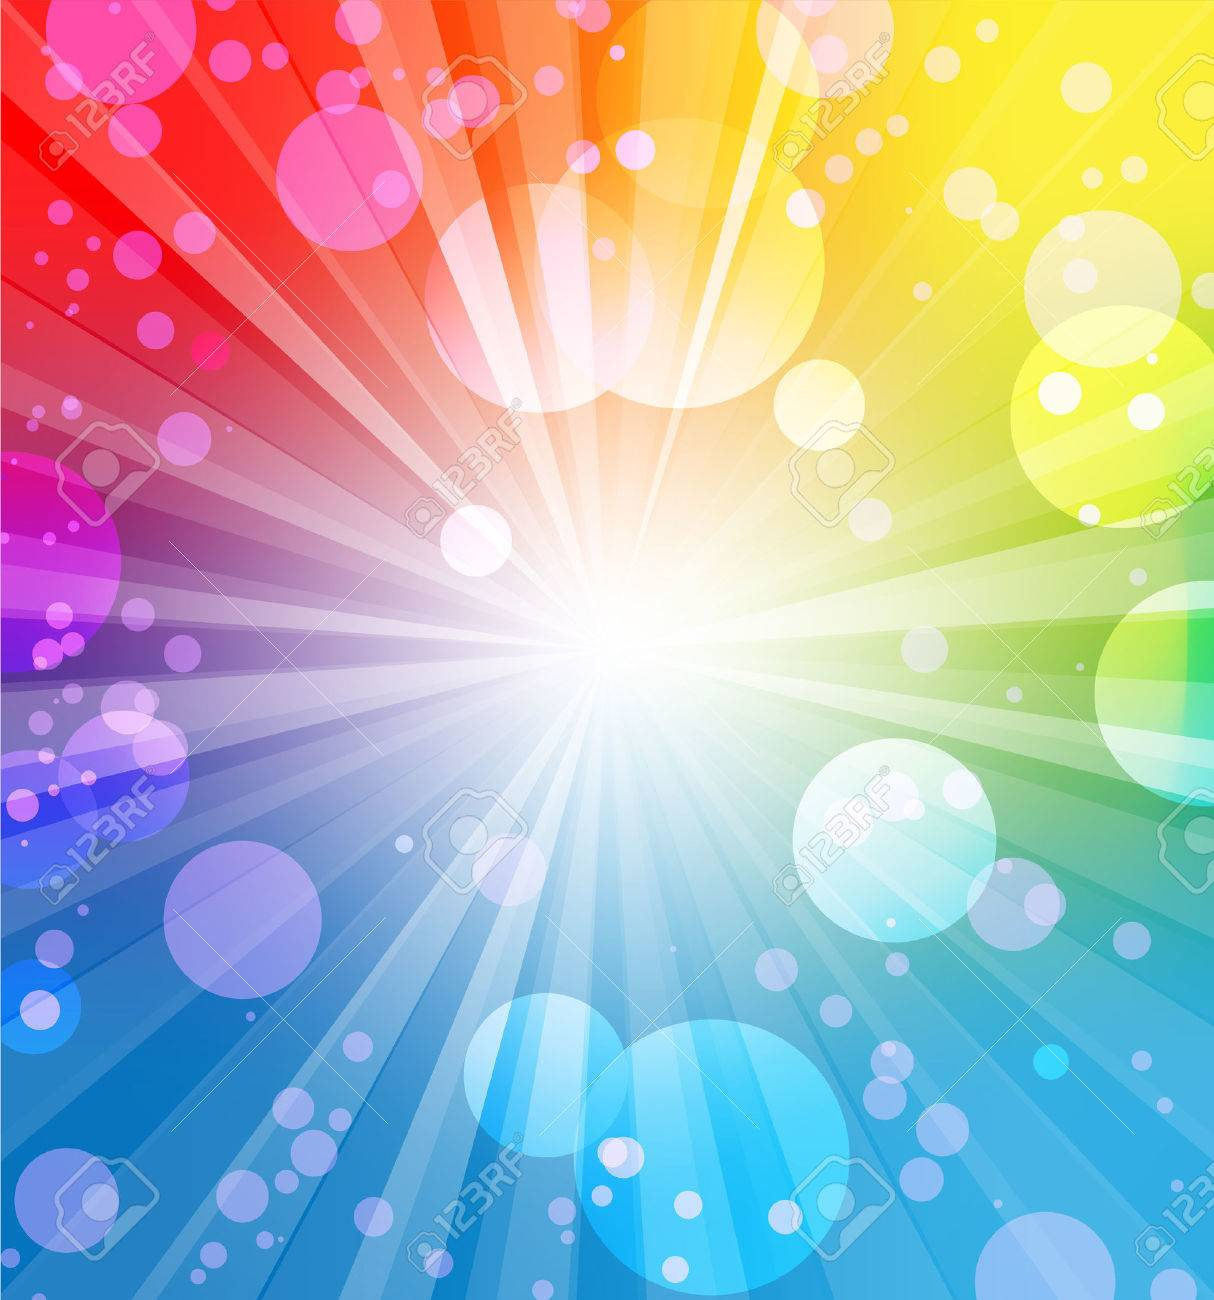 Holiday colorful background with place for text - 32500981